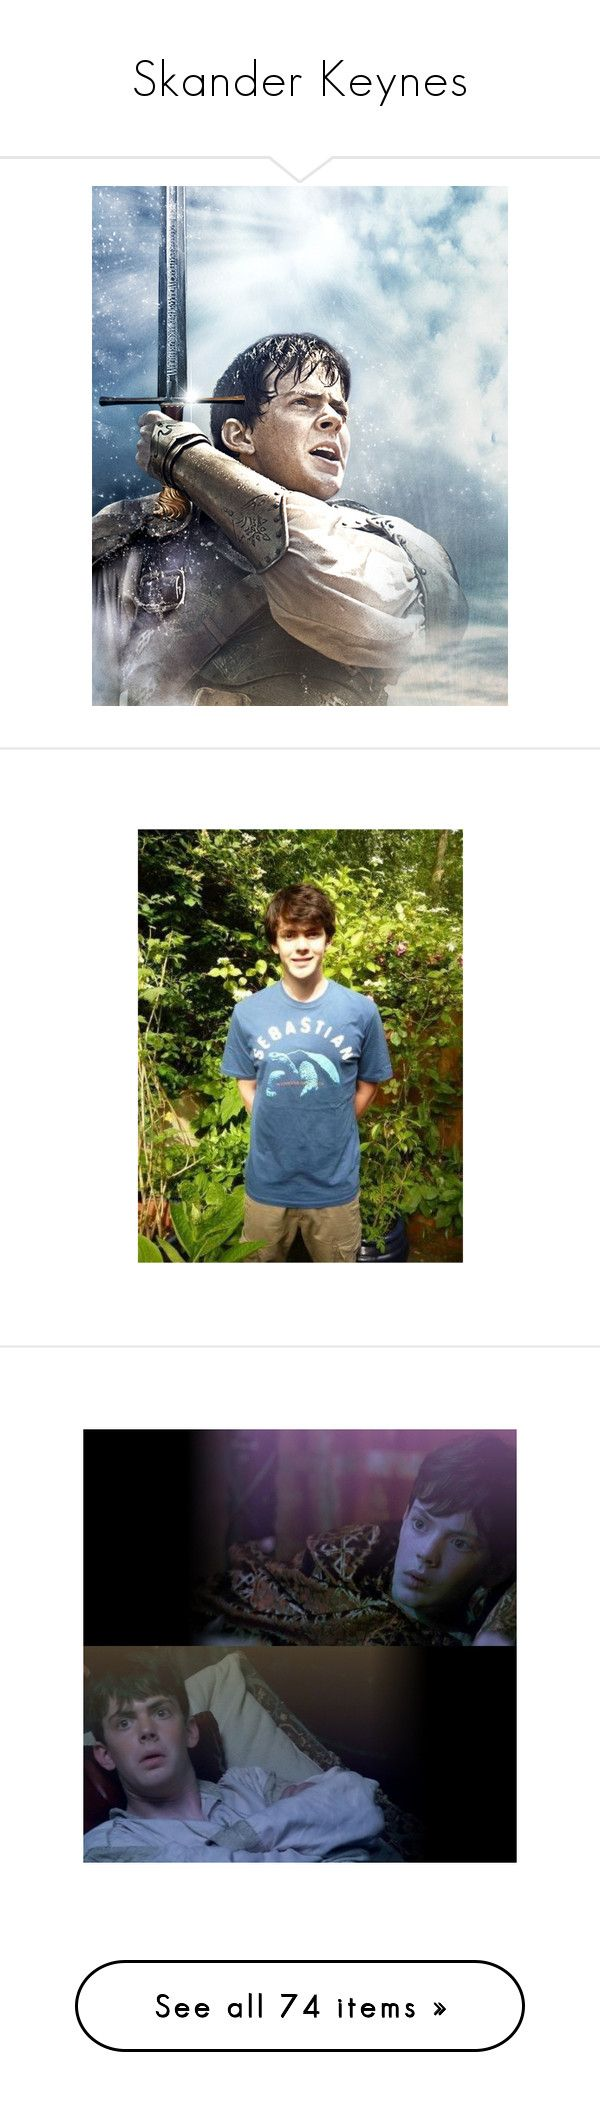 """Skander Keynes"" by sgede11 ❤ liked on Polyvore featuring narnia, chronicles of narnia, georgie henley, people, other, men, skandar keynes, skander keynes, models and home"